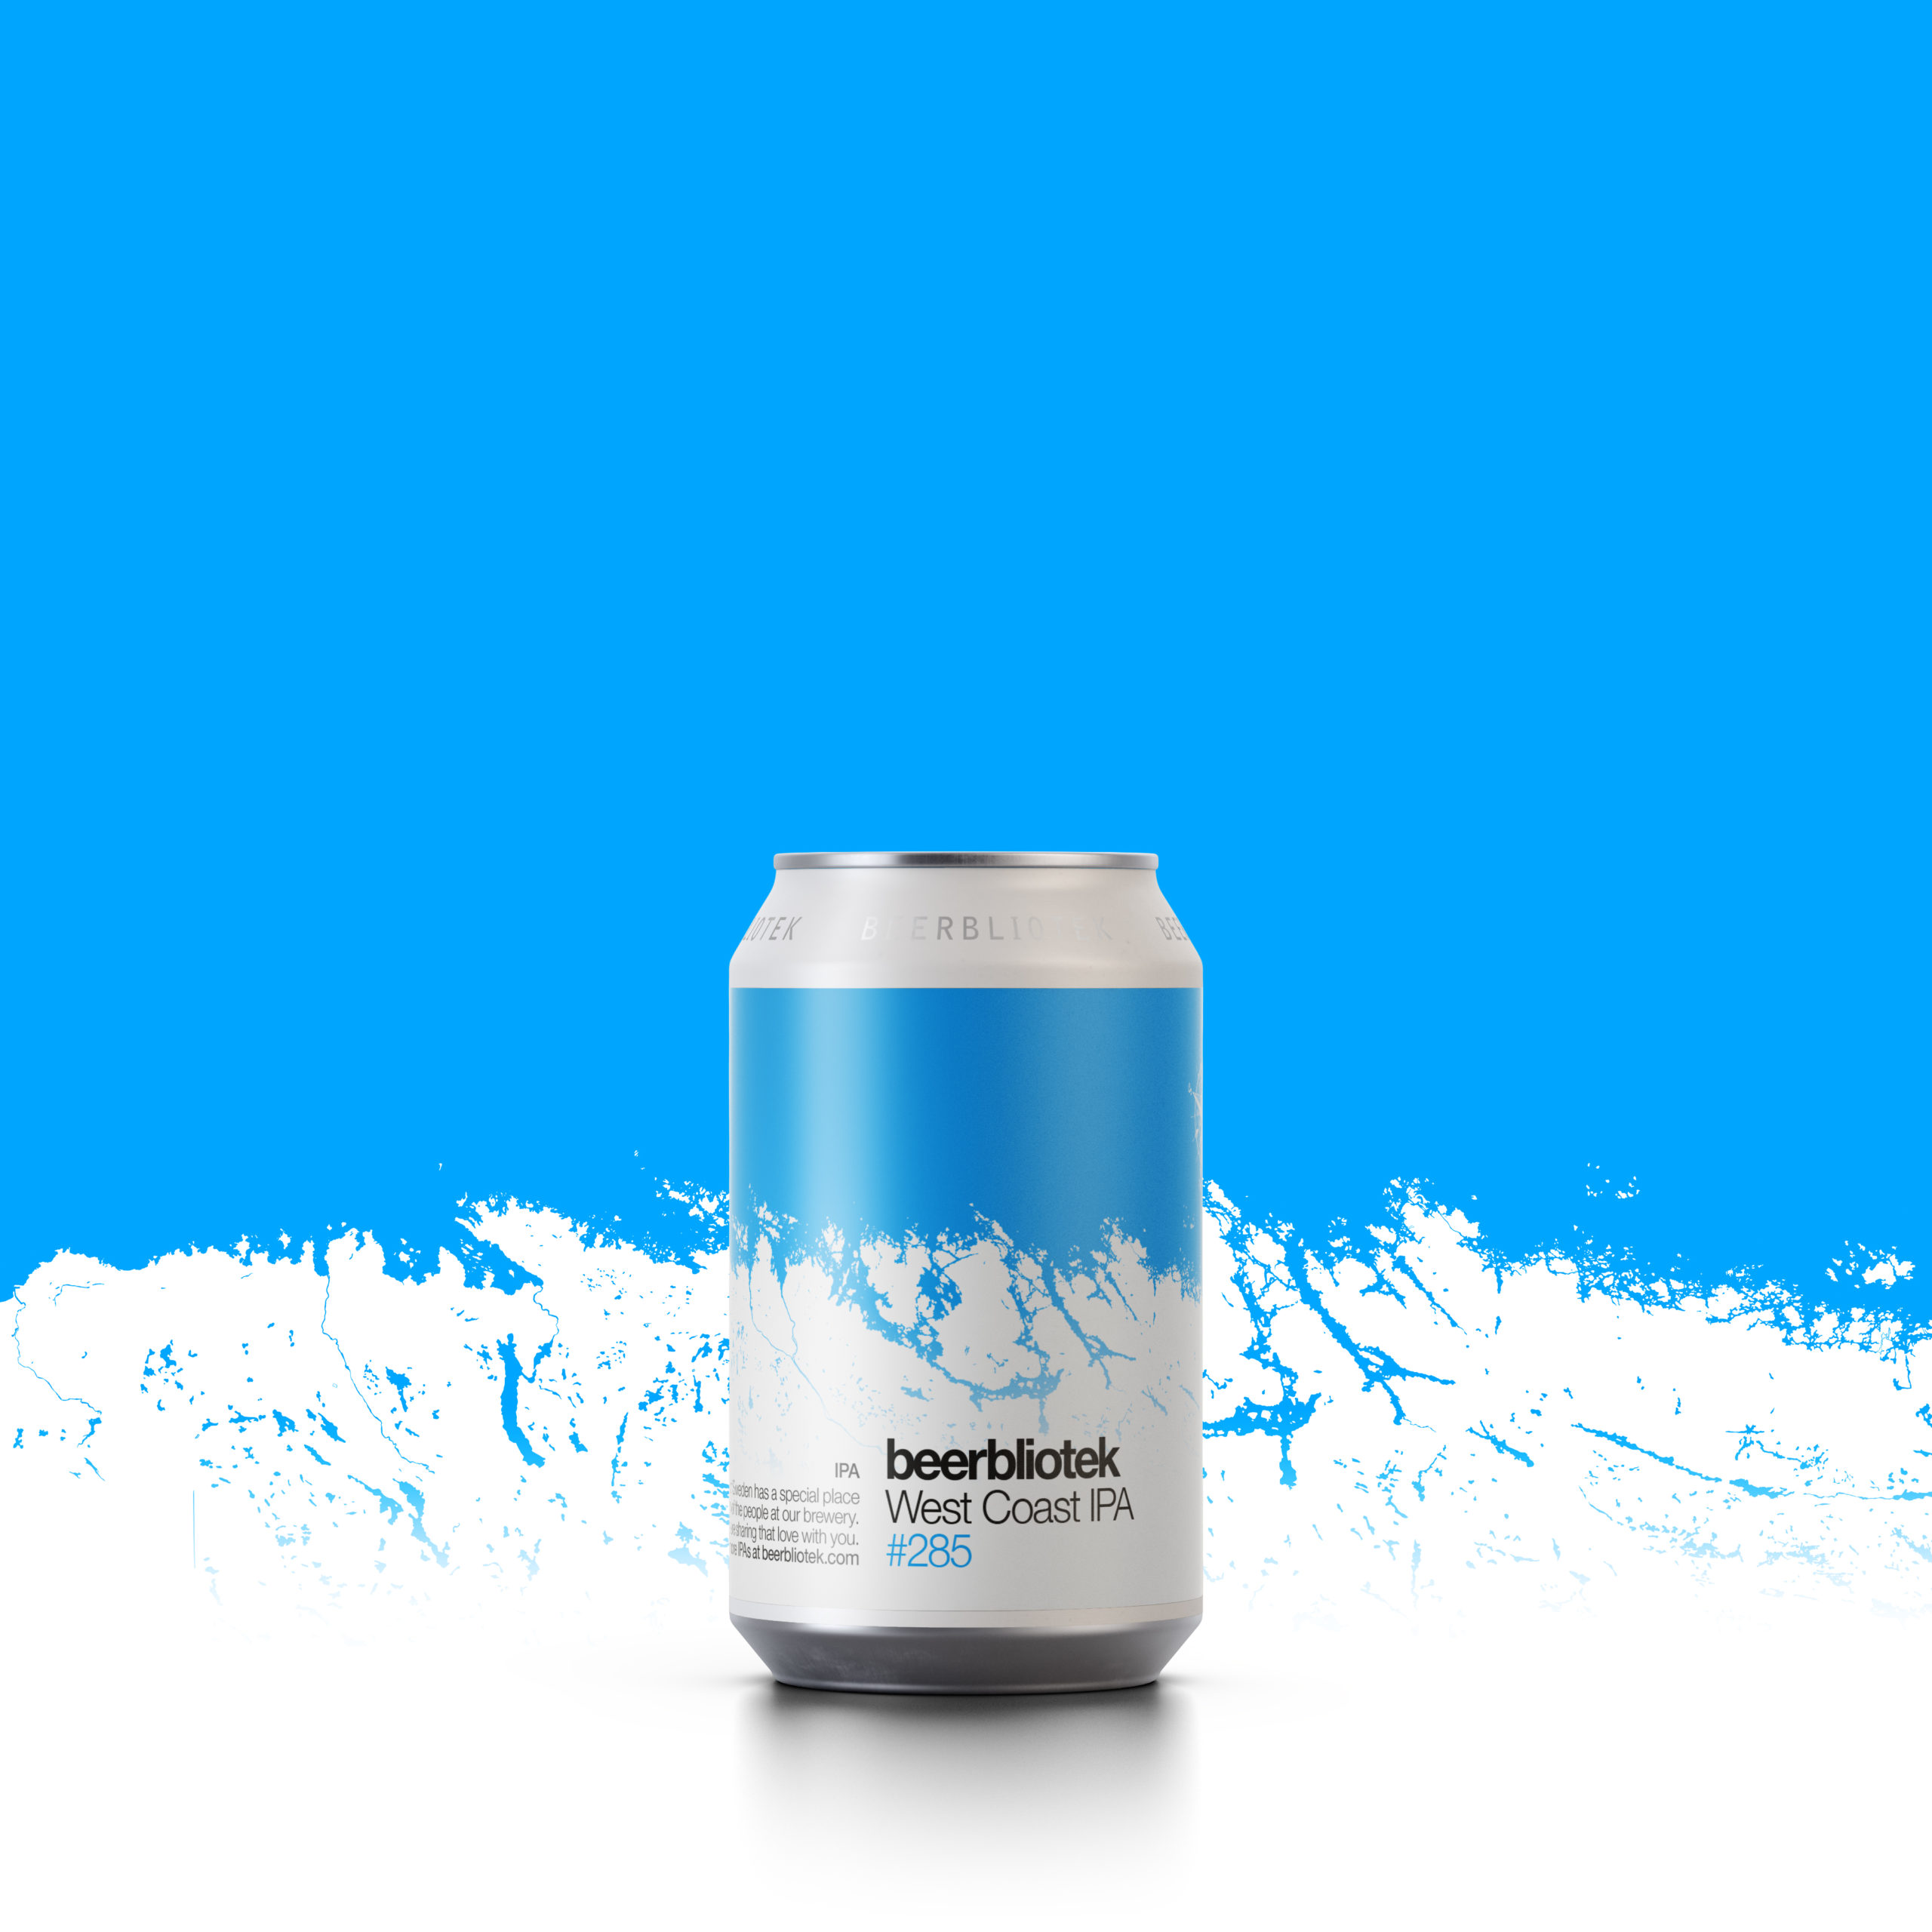 A can packshot of West Coast IPA, with a design of the Swedish West Coast, an IPA from Swedish Brewery Beerbliotek.